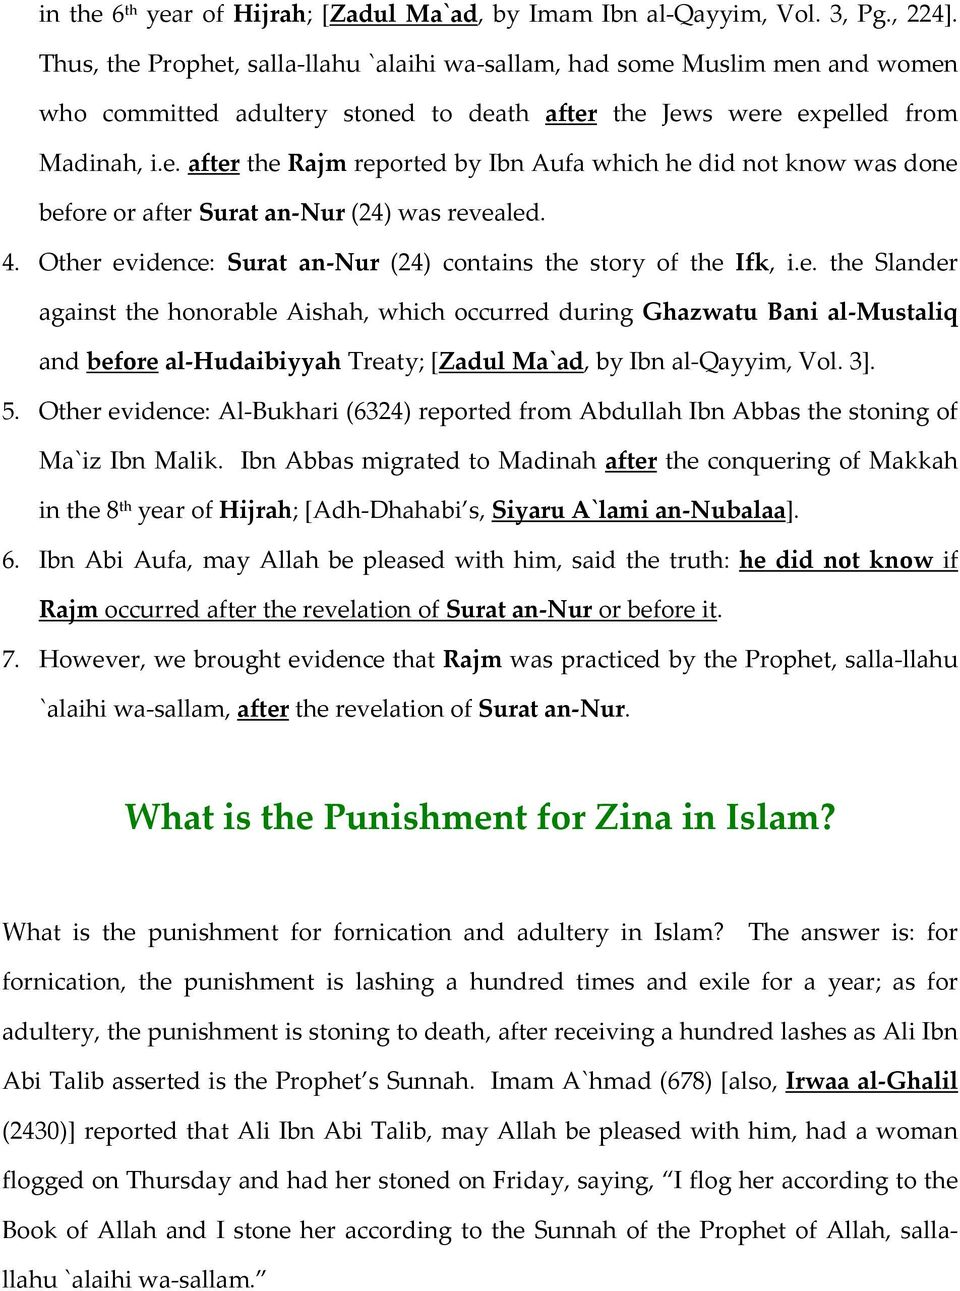 4. Other evidence: Surat an-nur (24) contains the story of the Ifk, i.e. the Slander against the honorable Aishah, which occurred during Ghazwatu Bani al-mustaliq and before al-hudaibiyyah Treaty; [Zadul Ma`ad, by Ibn al-qayyim, Vol.